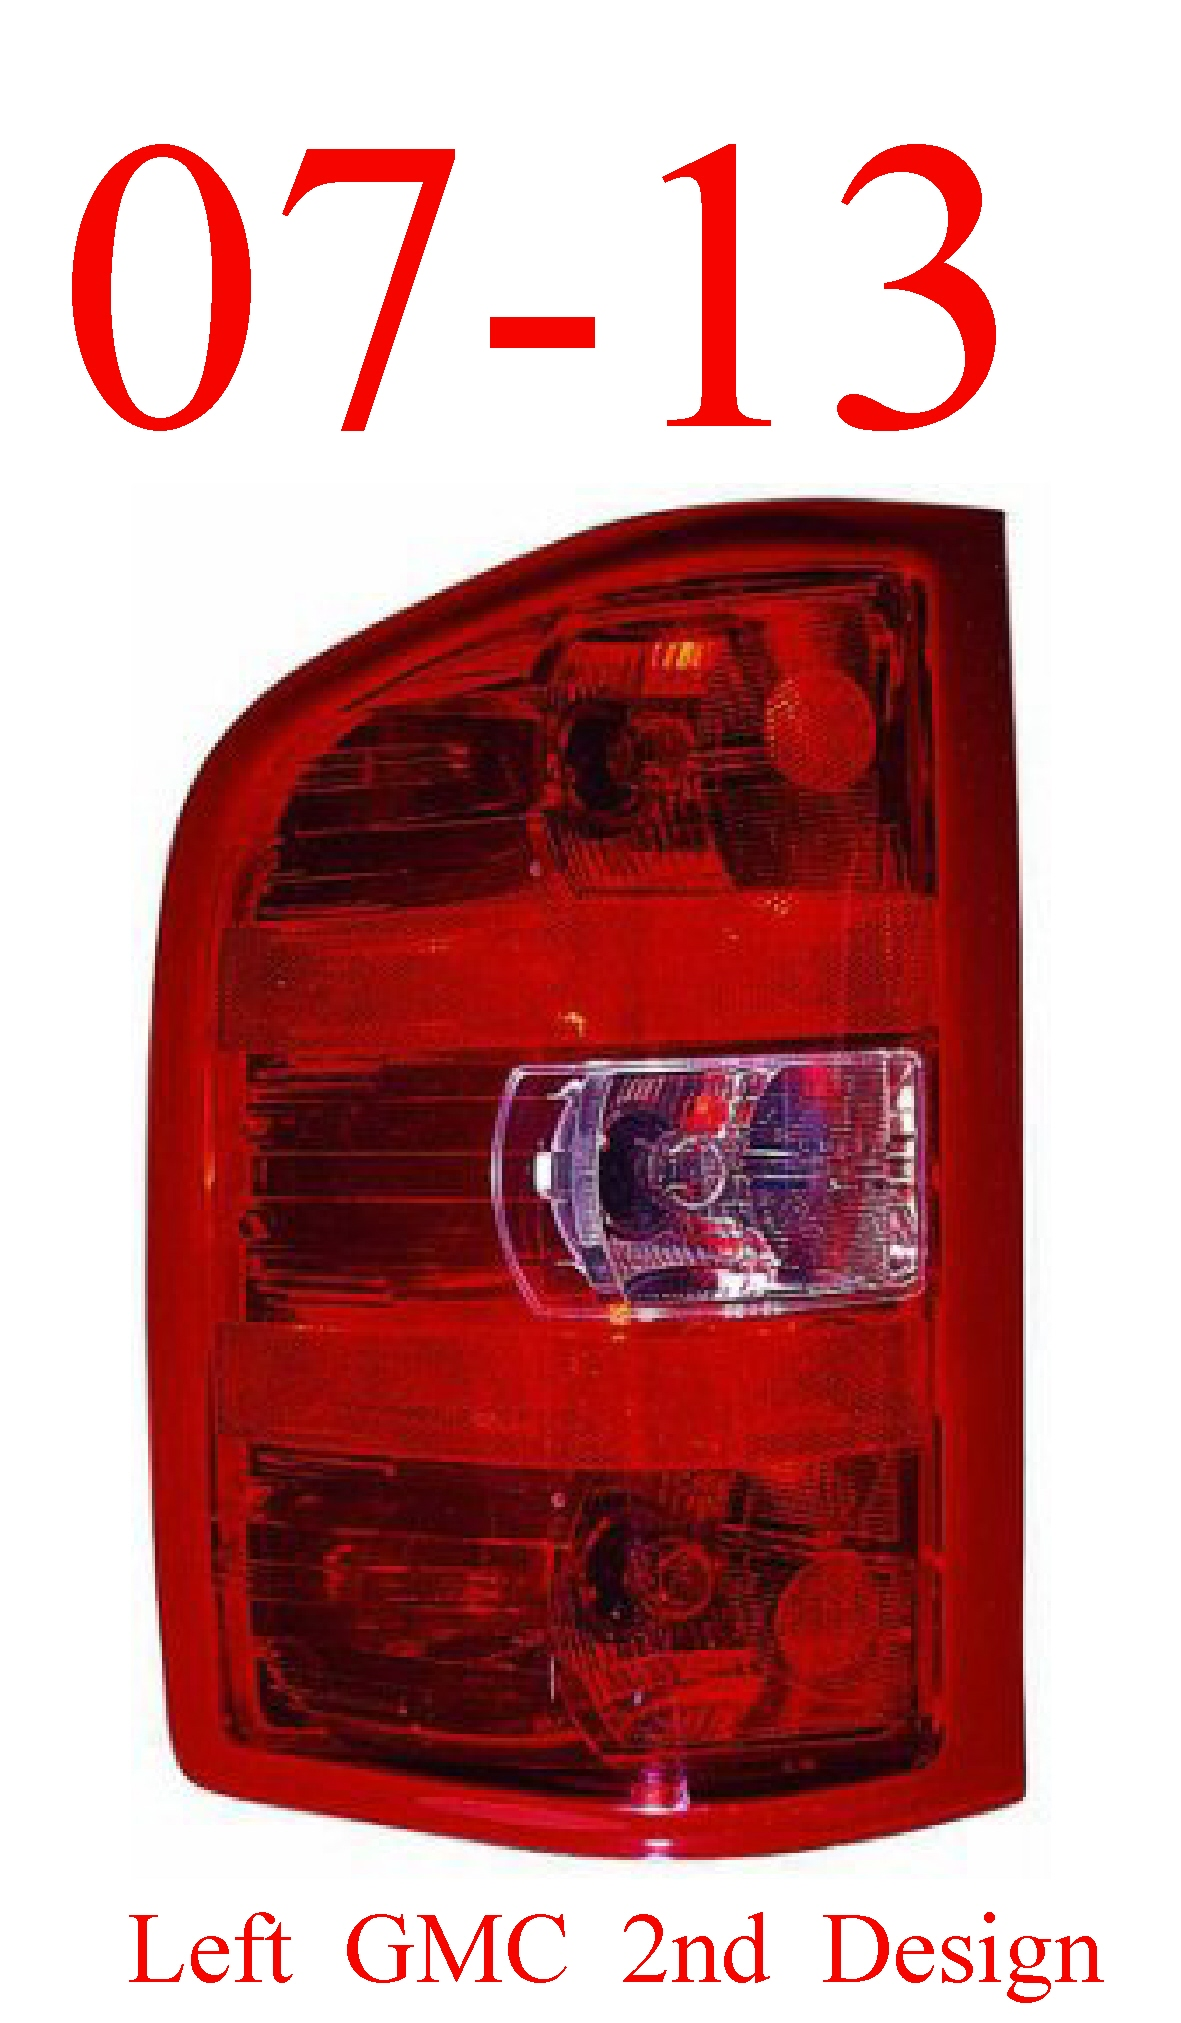 07-13 GMC Left Tail Light 2nd Design